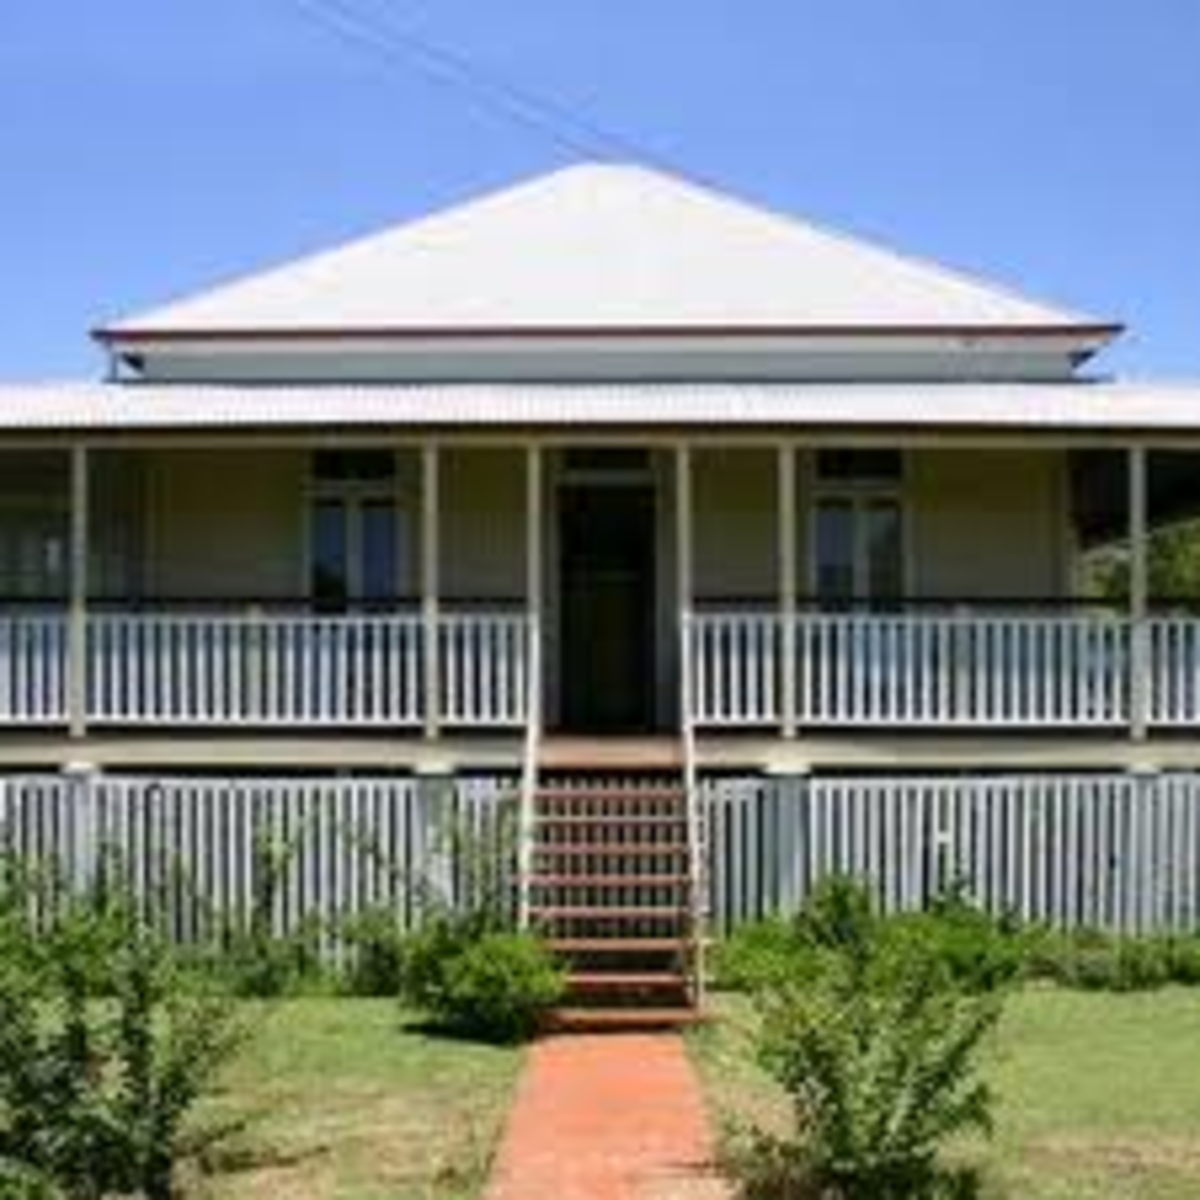 This is one of the many affordable timber houses, some times they are called workers cottage. It was in a house like this that I was welcome in Brisbane when I arrived.